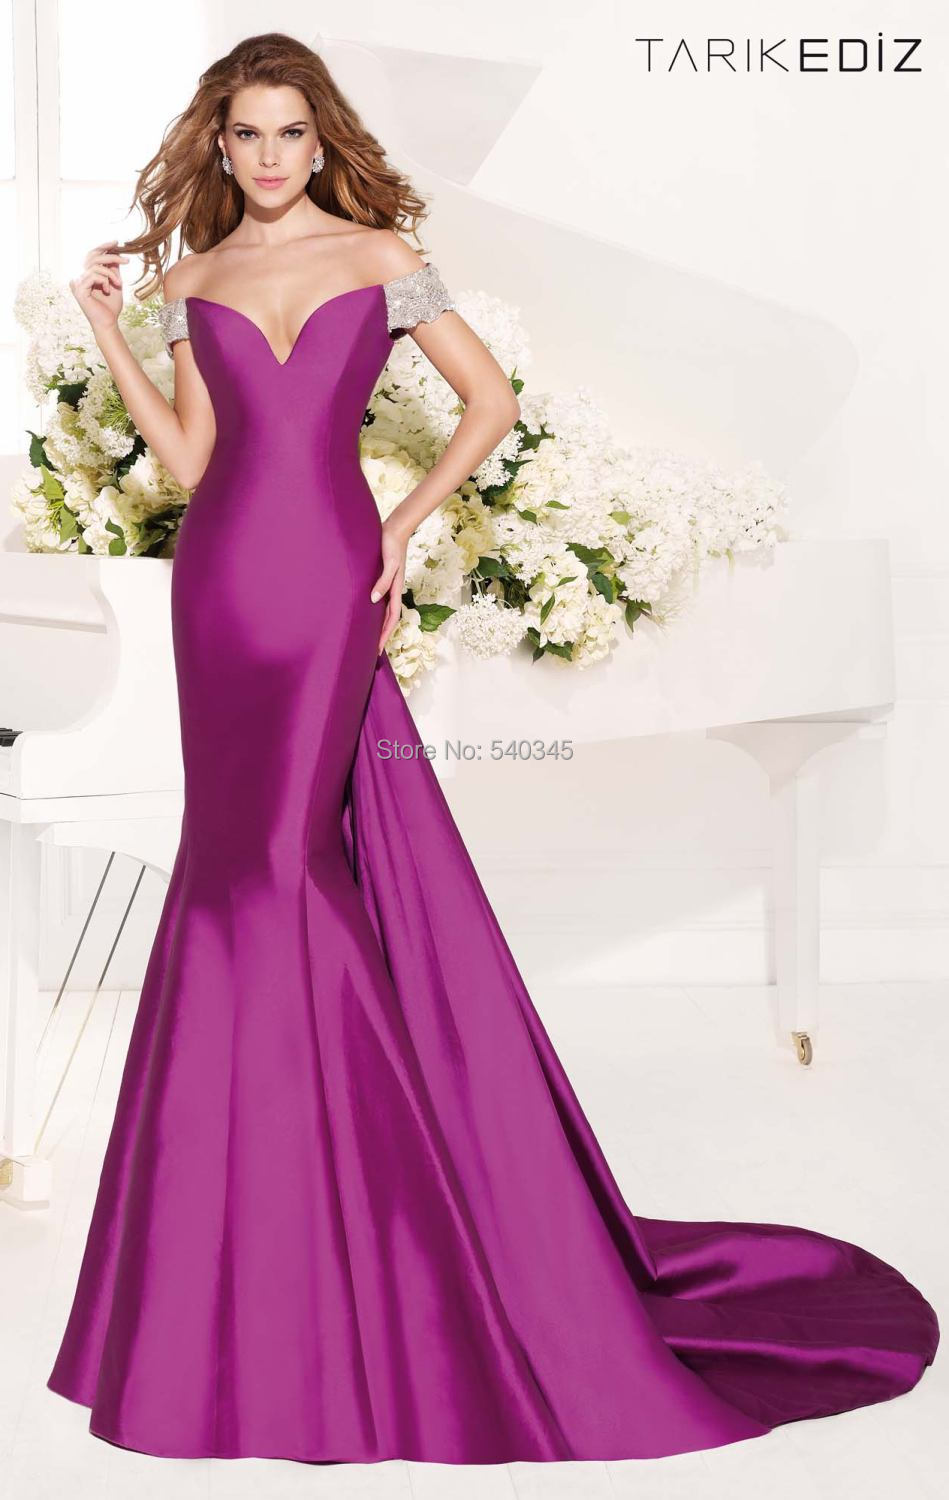 2014 Court Train   Evening     Dresses   Mermaid Off the Shoulder V-Neck Crystal Sequined Beading Sexy Long Prom Party Gowns 2014 E11